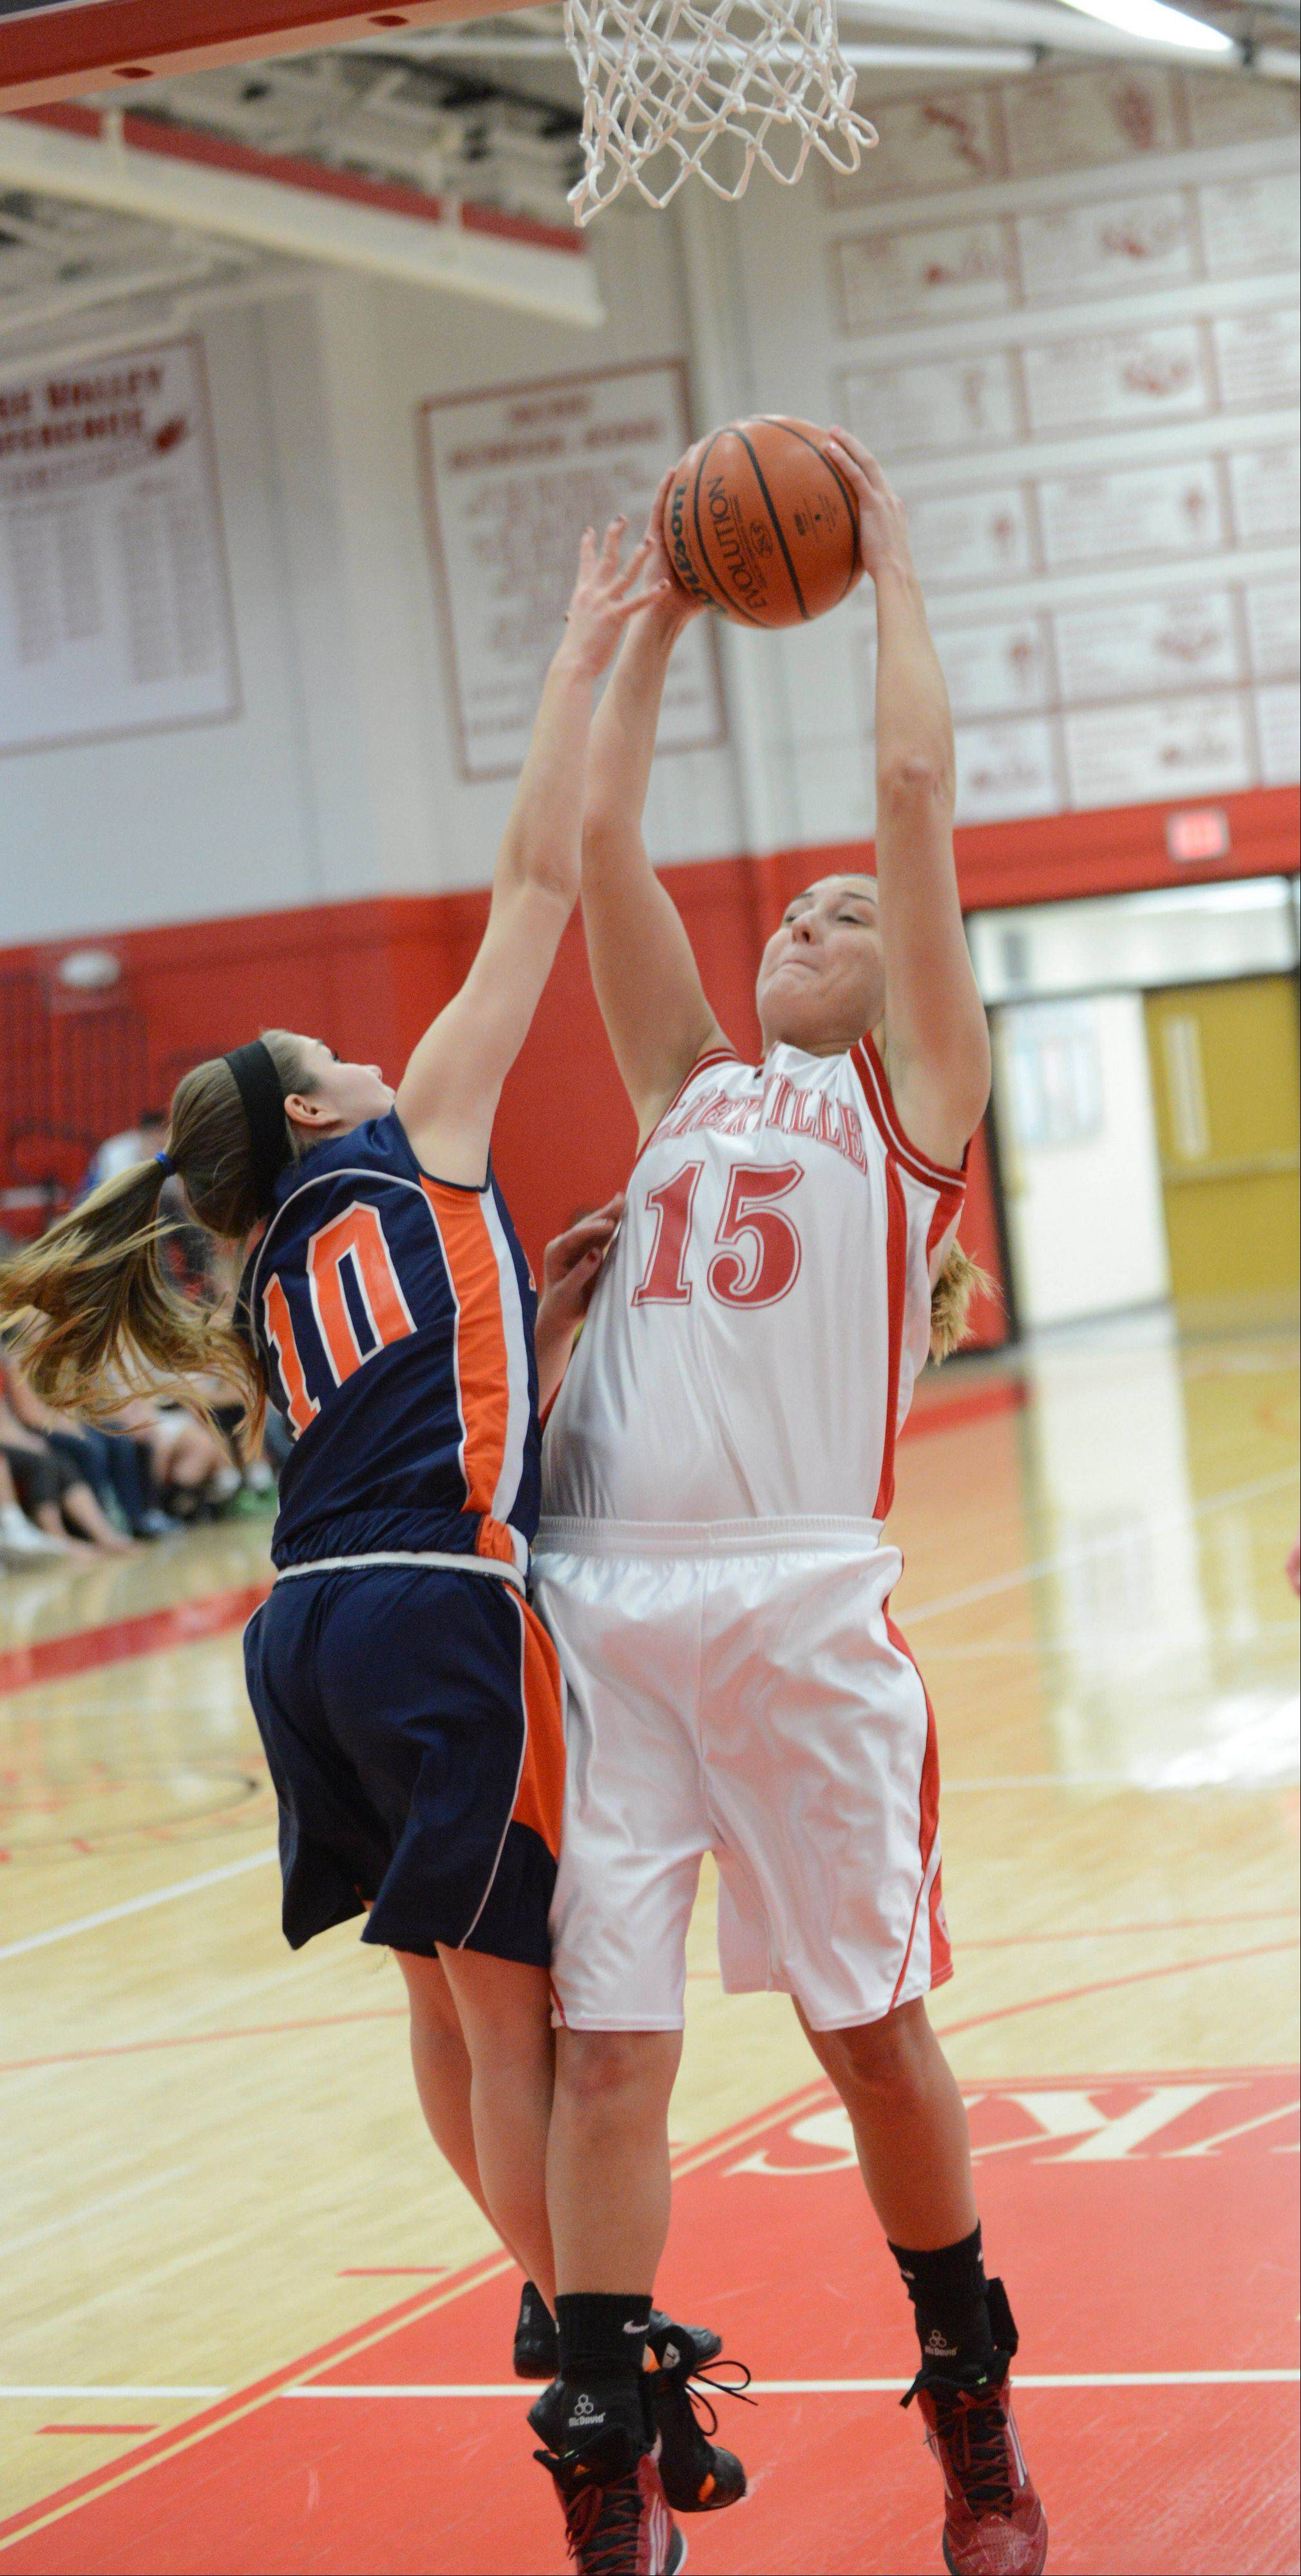 Lauren LoLordo of Naperville North tries to block Victoria Trowbridge of Naperville Central.